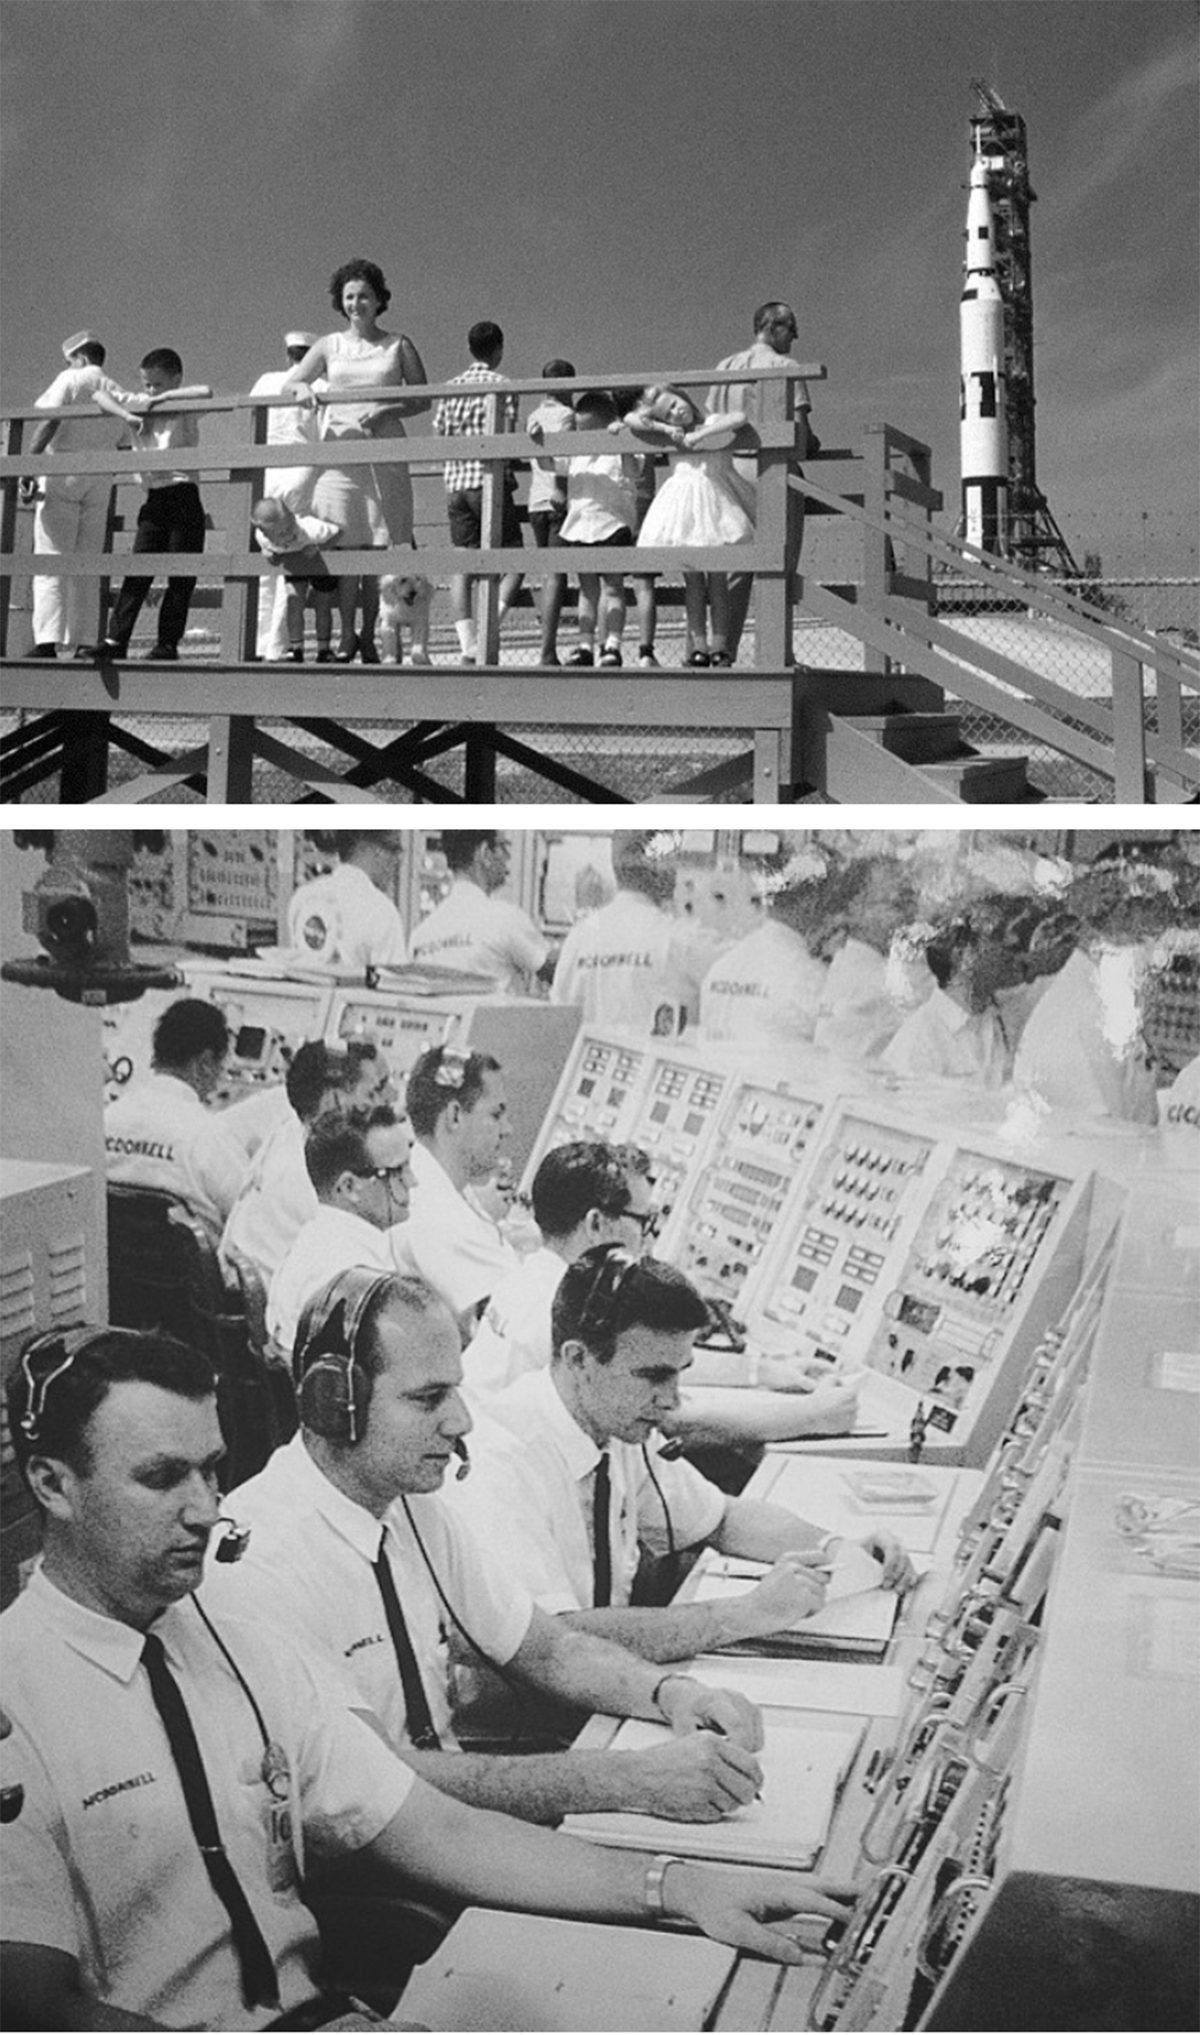 INVESTMENT IN PEOPLE Steve Johnson's father, a mechanical engineer, worked at NASA in the 1960S on the Saturn program — the precursor to the Apollo program. Above: Steve (second from left) and family at Cape Canaveral Florida; Below: Steve's father in the control room (third from left).